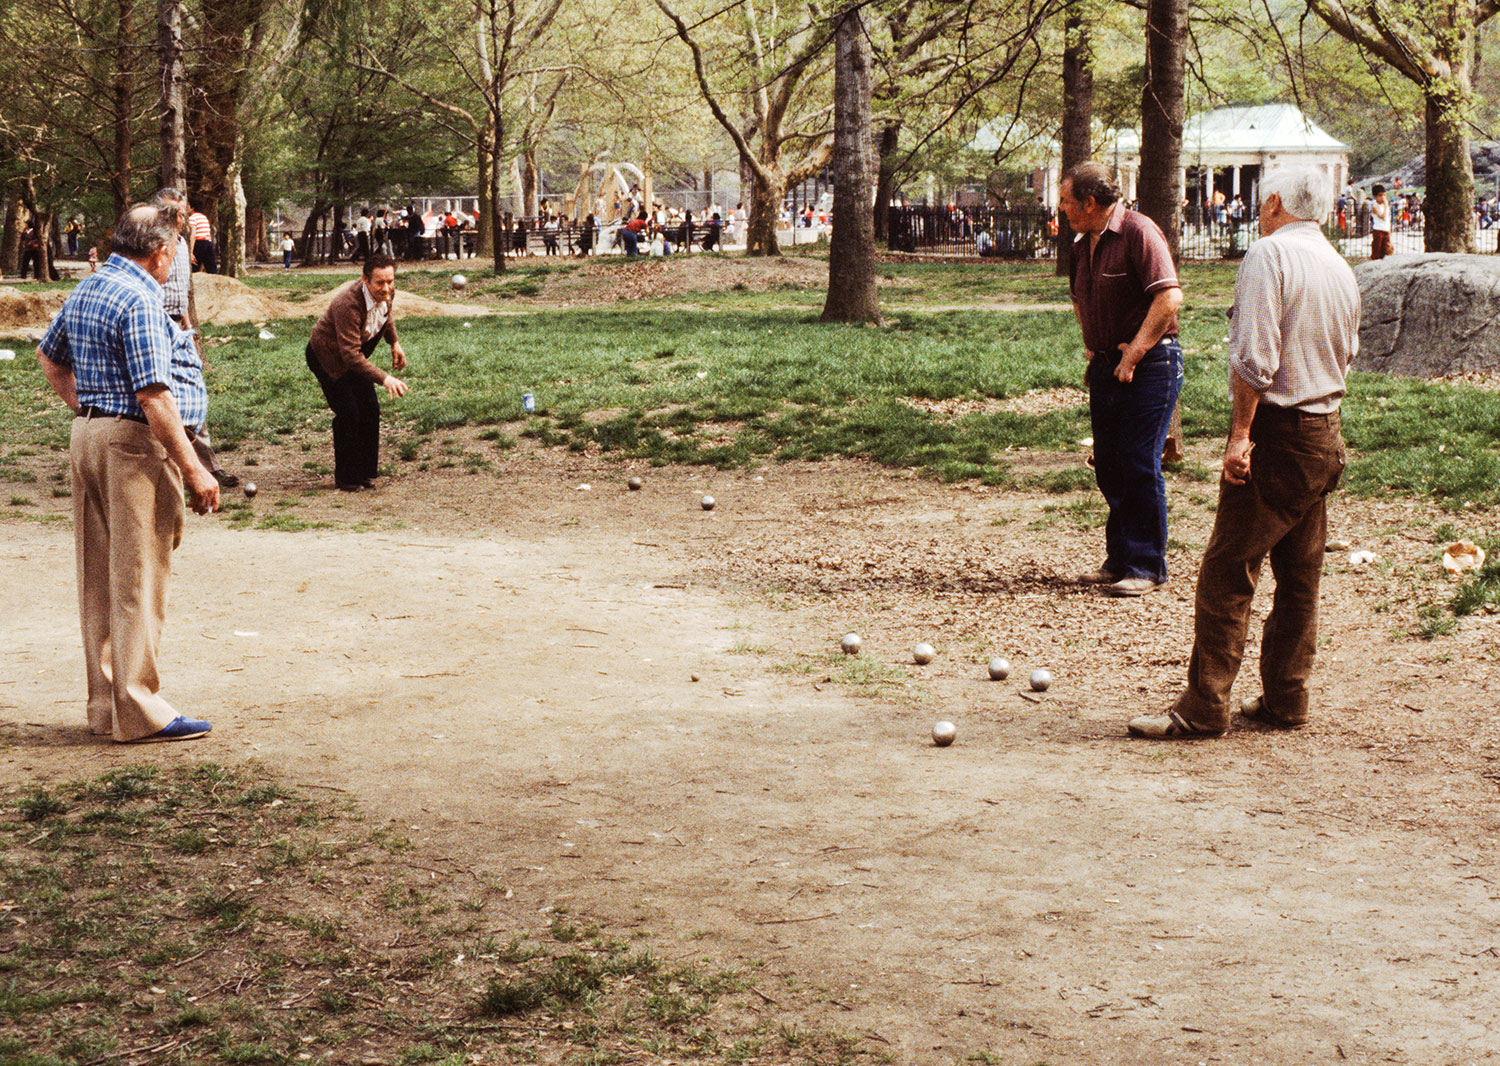 Pitanque In Cenral Park 1984